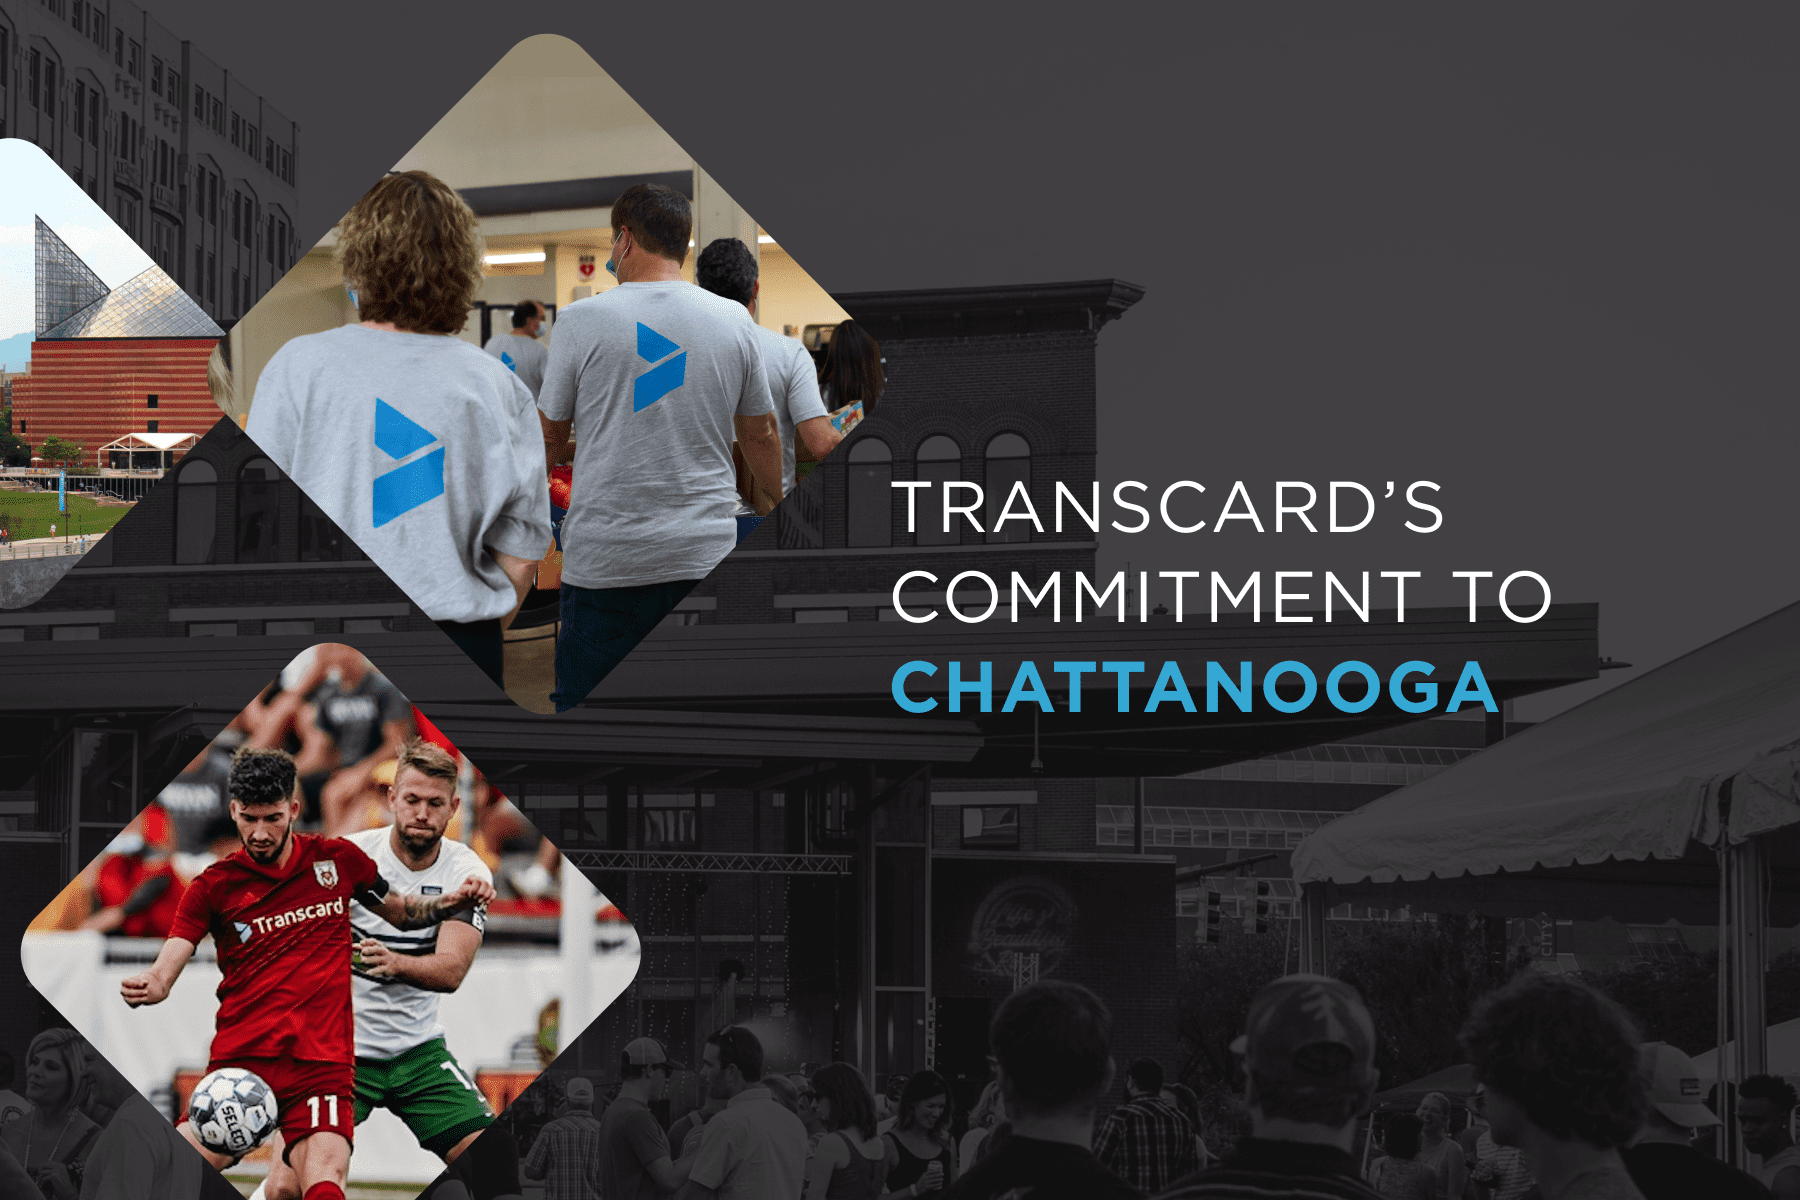 commitment-chattanooga